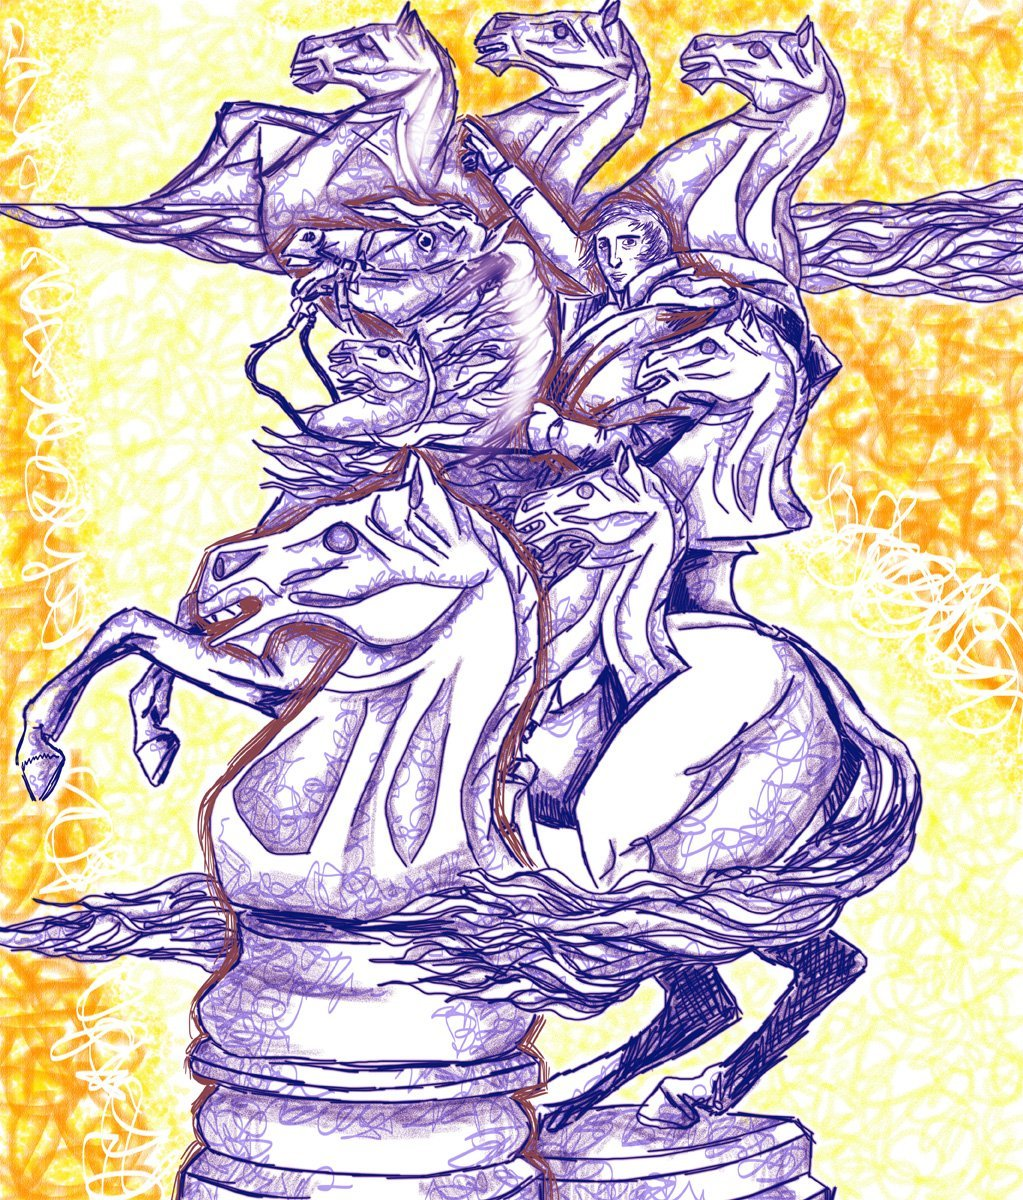 The image shows a piece of artwork by Jina Wallwork. It is a digital drawing of a man, some horses, and the knight chess pieces. Stylistically this piece of artwork has links with surrealism.